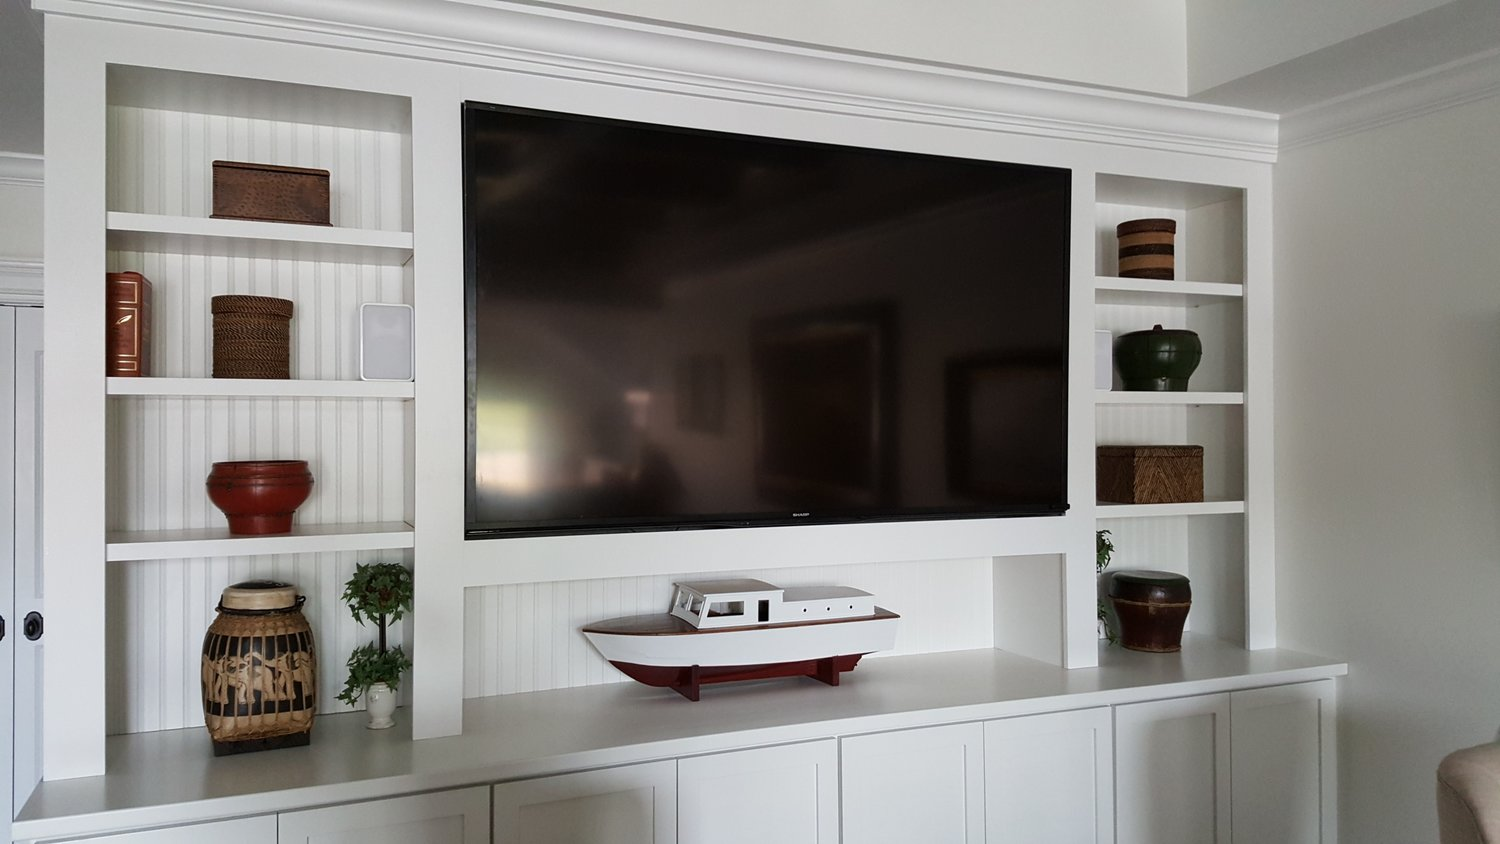 Expert Audio, Video, and TV Installations